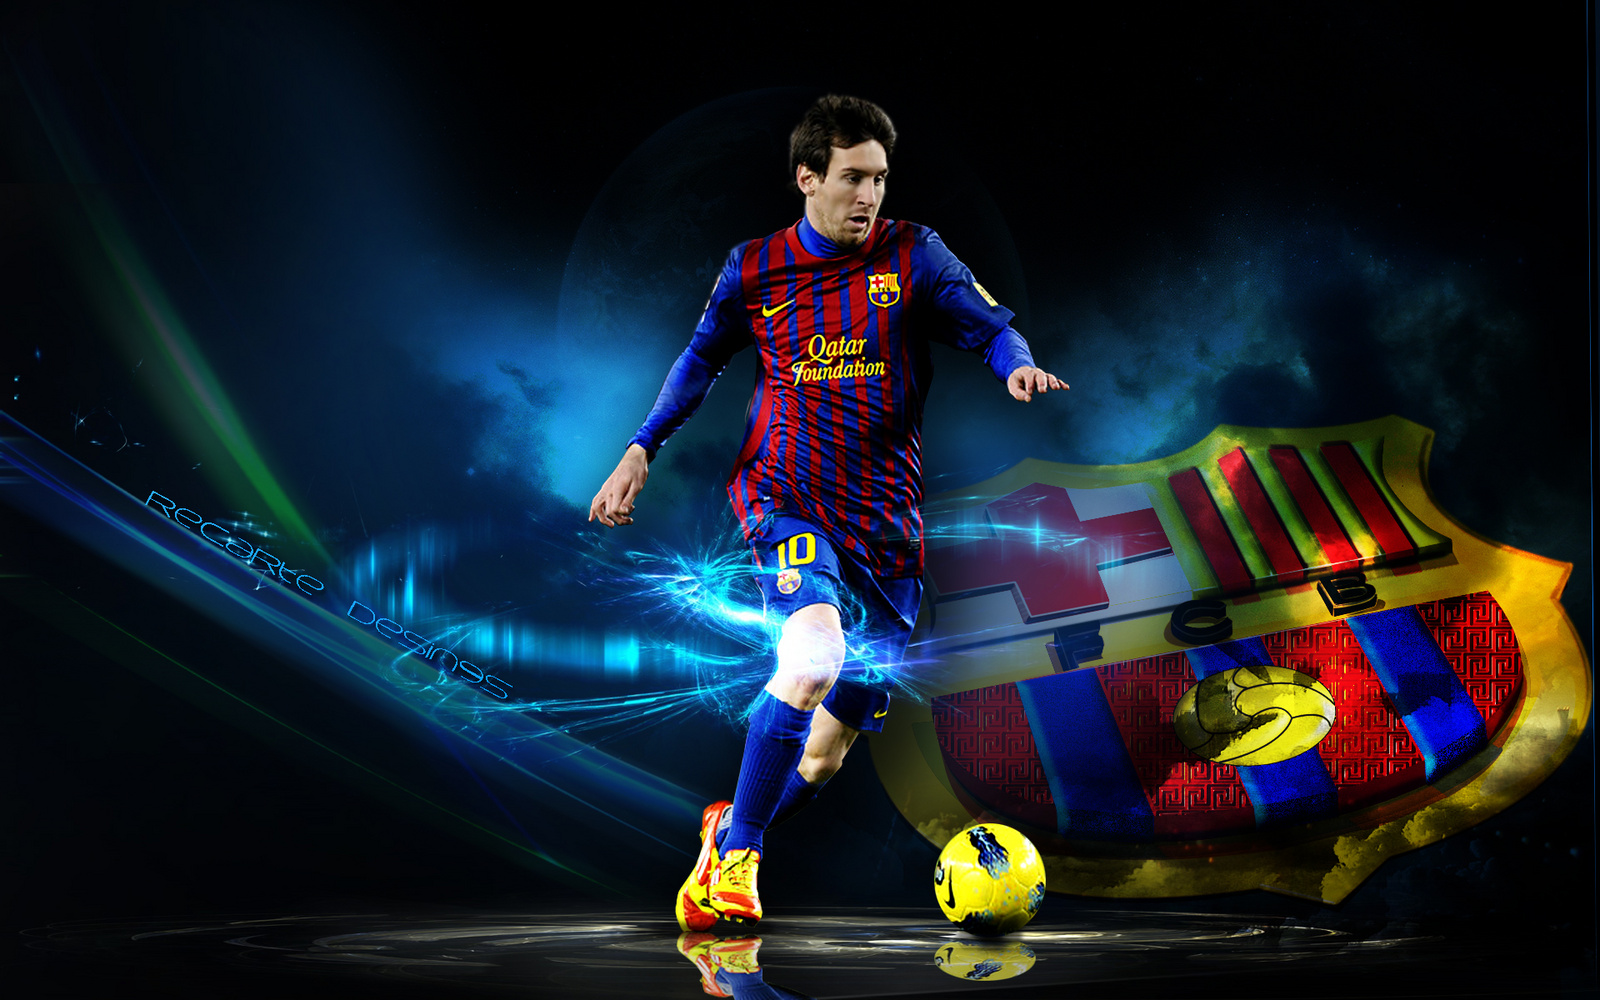 Lionel Messi Football Player Latest Hd Wallpapers HD Pictures 2013 1600x1000